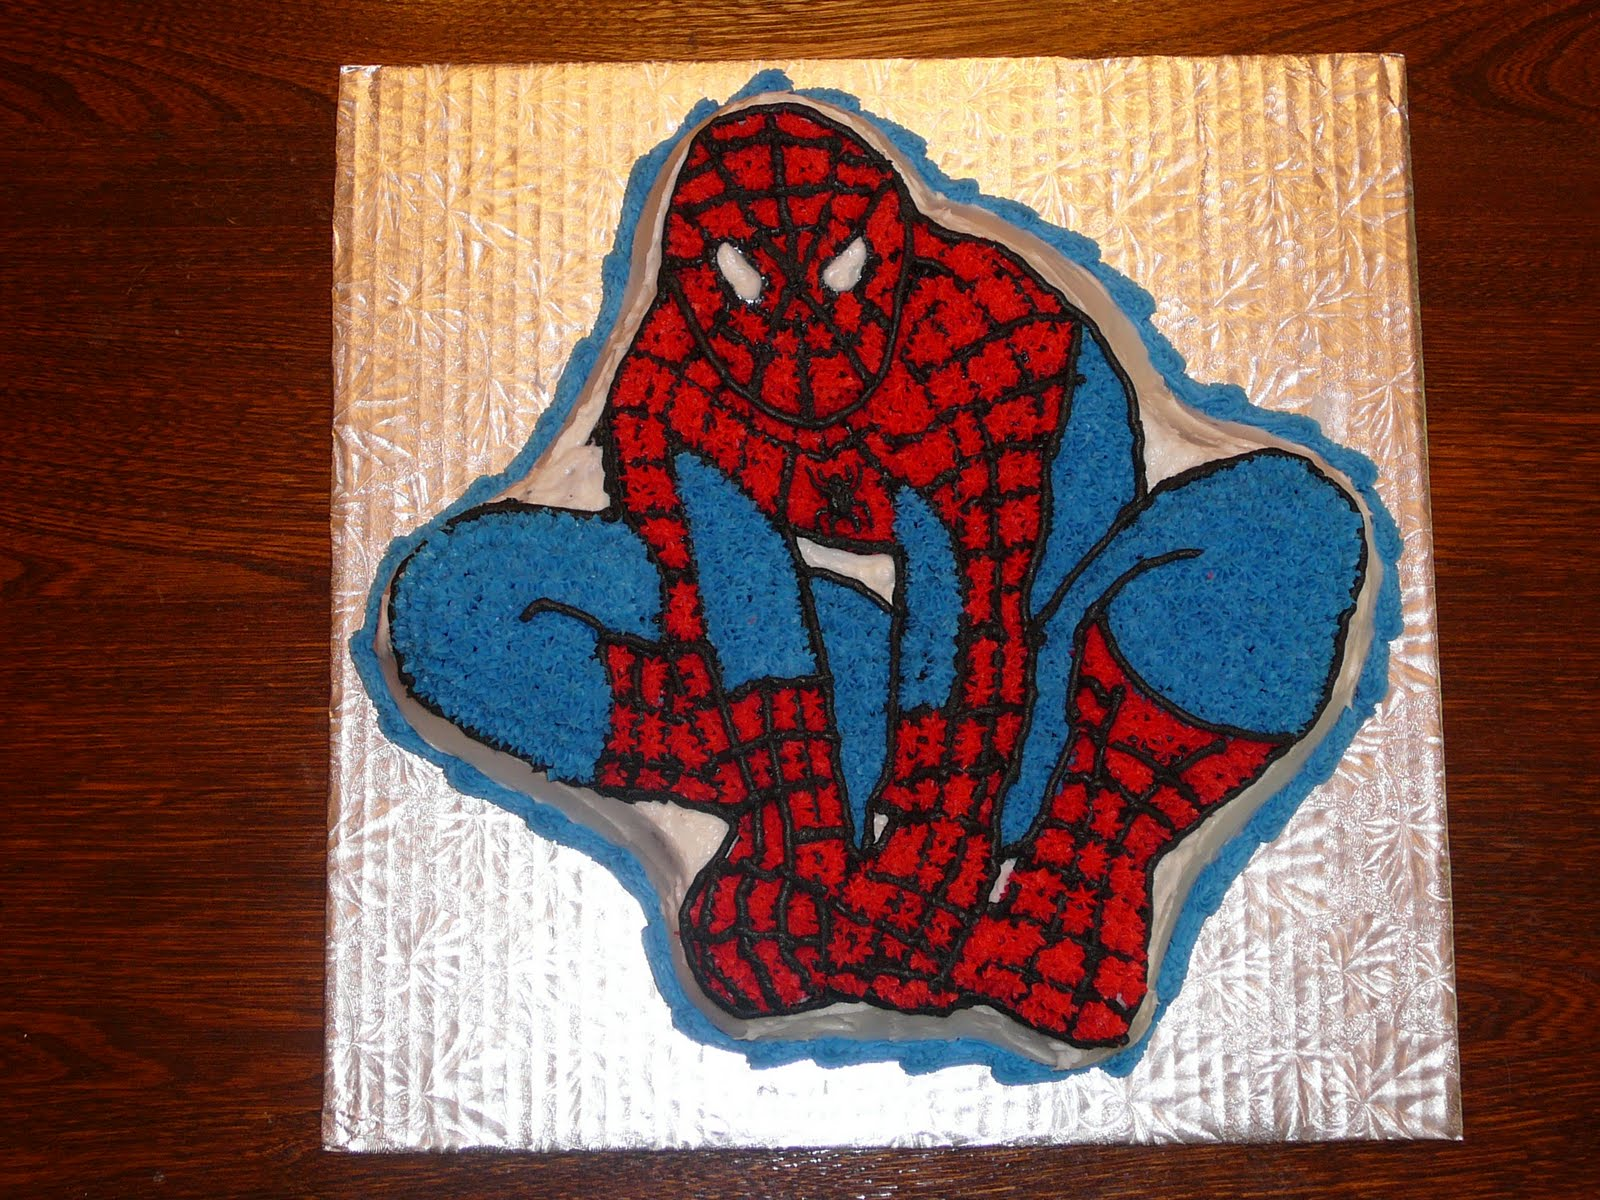 Cake Decorating Kit Bulk Barn : Spiderman Cake Pan Bulk Barn